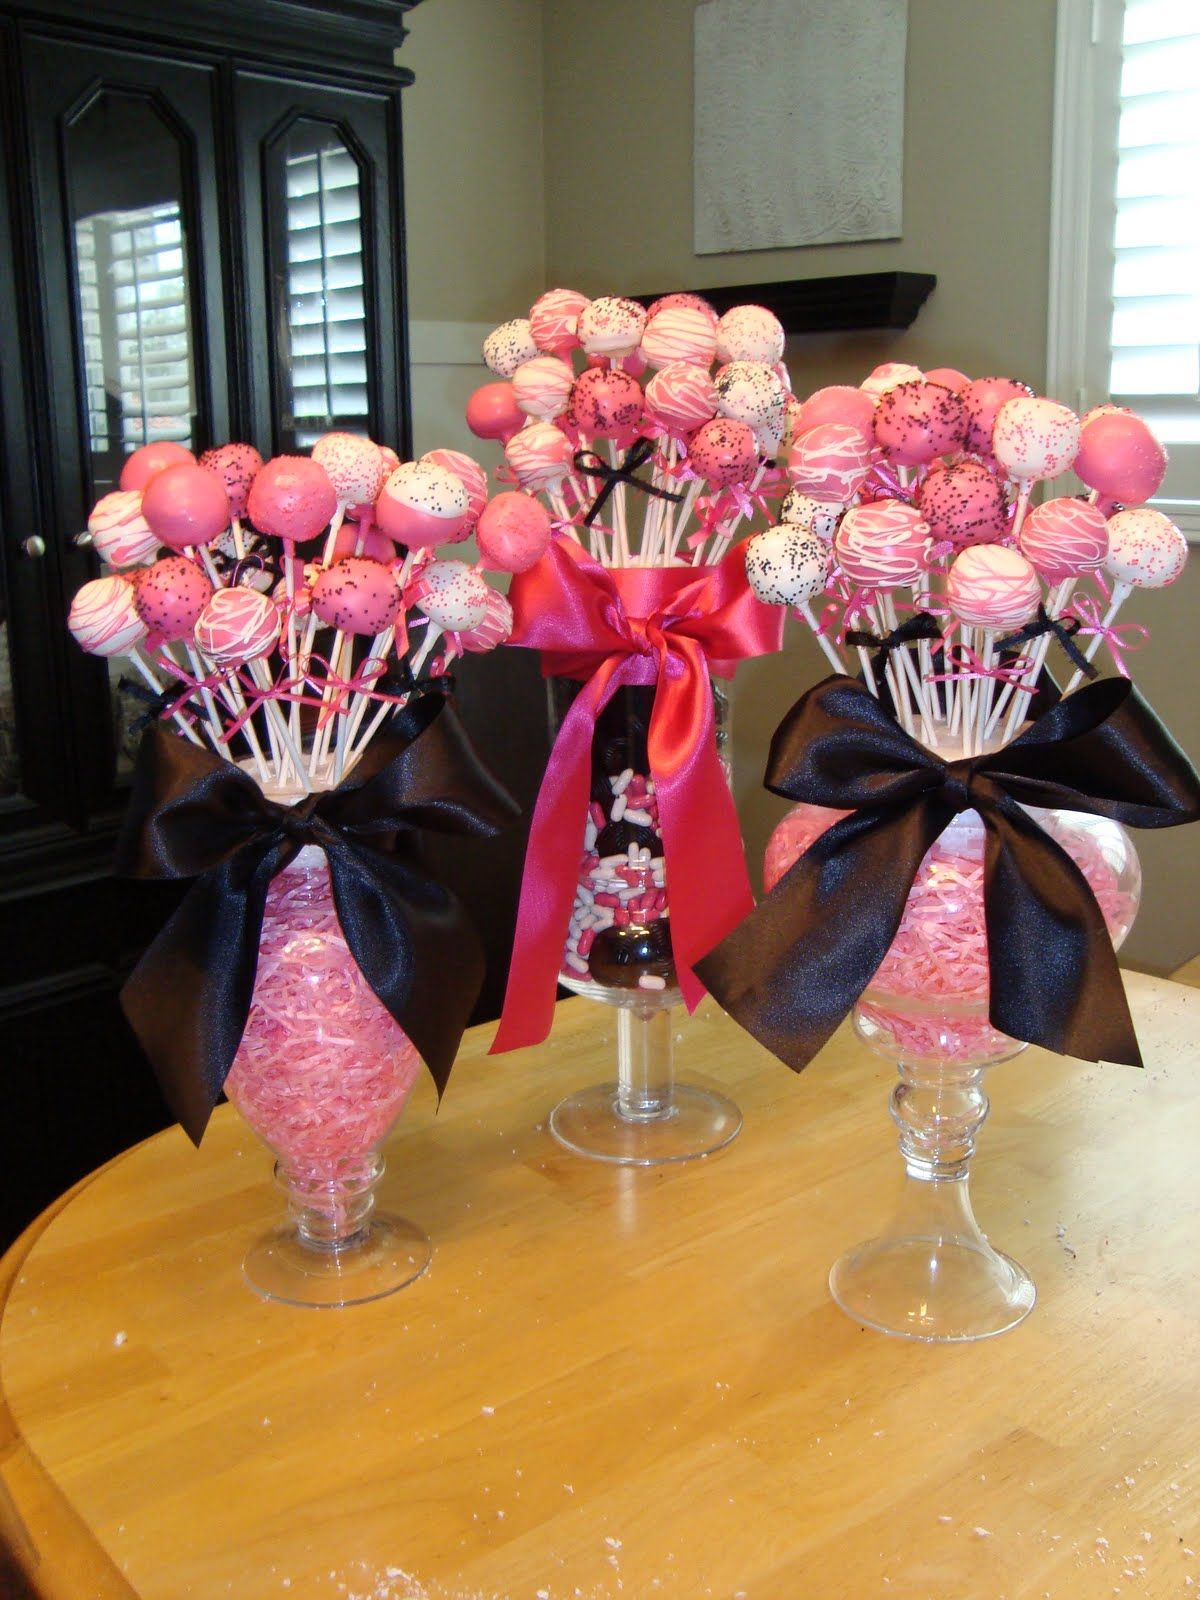 Cake Pops With Images Cake Pop Holder Cake Pop Displays Cake